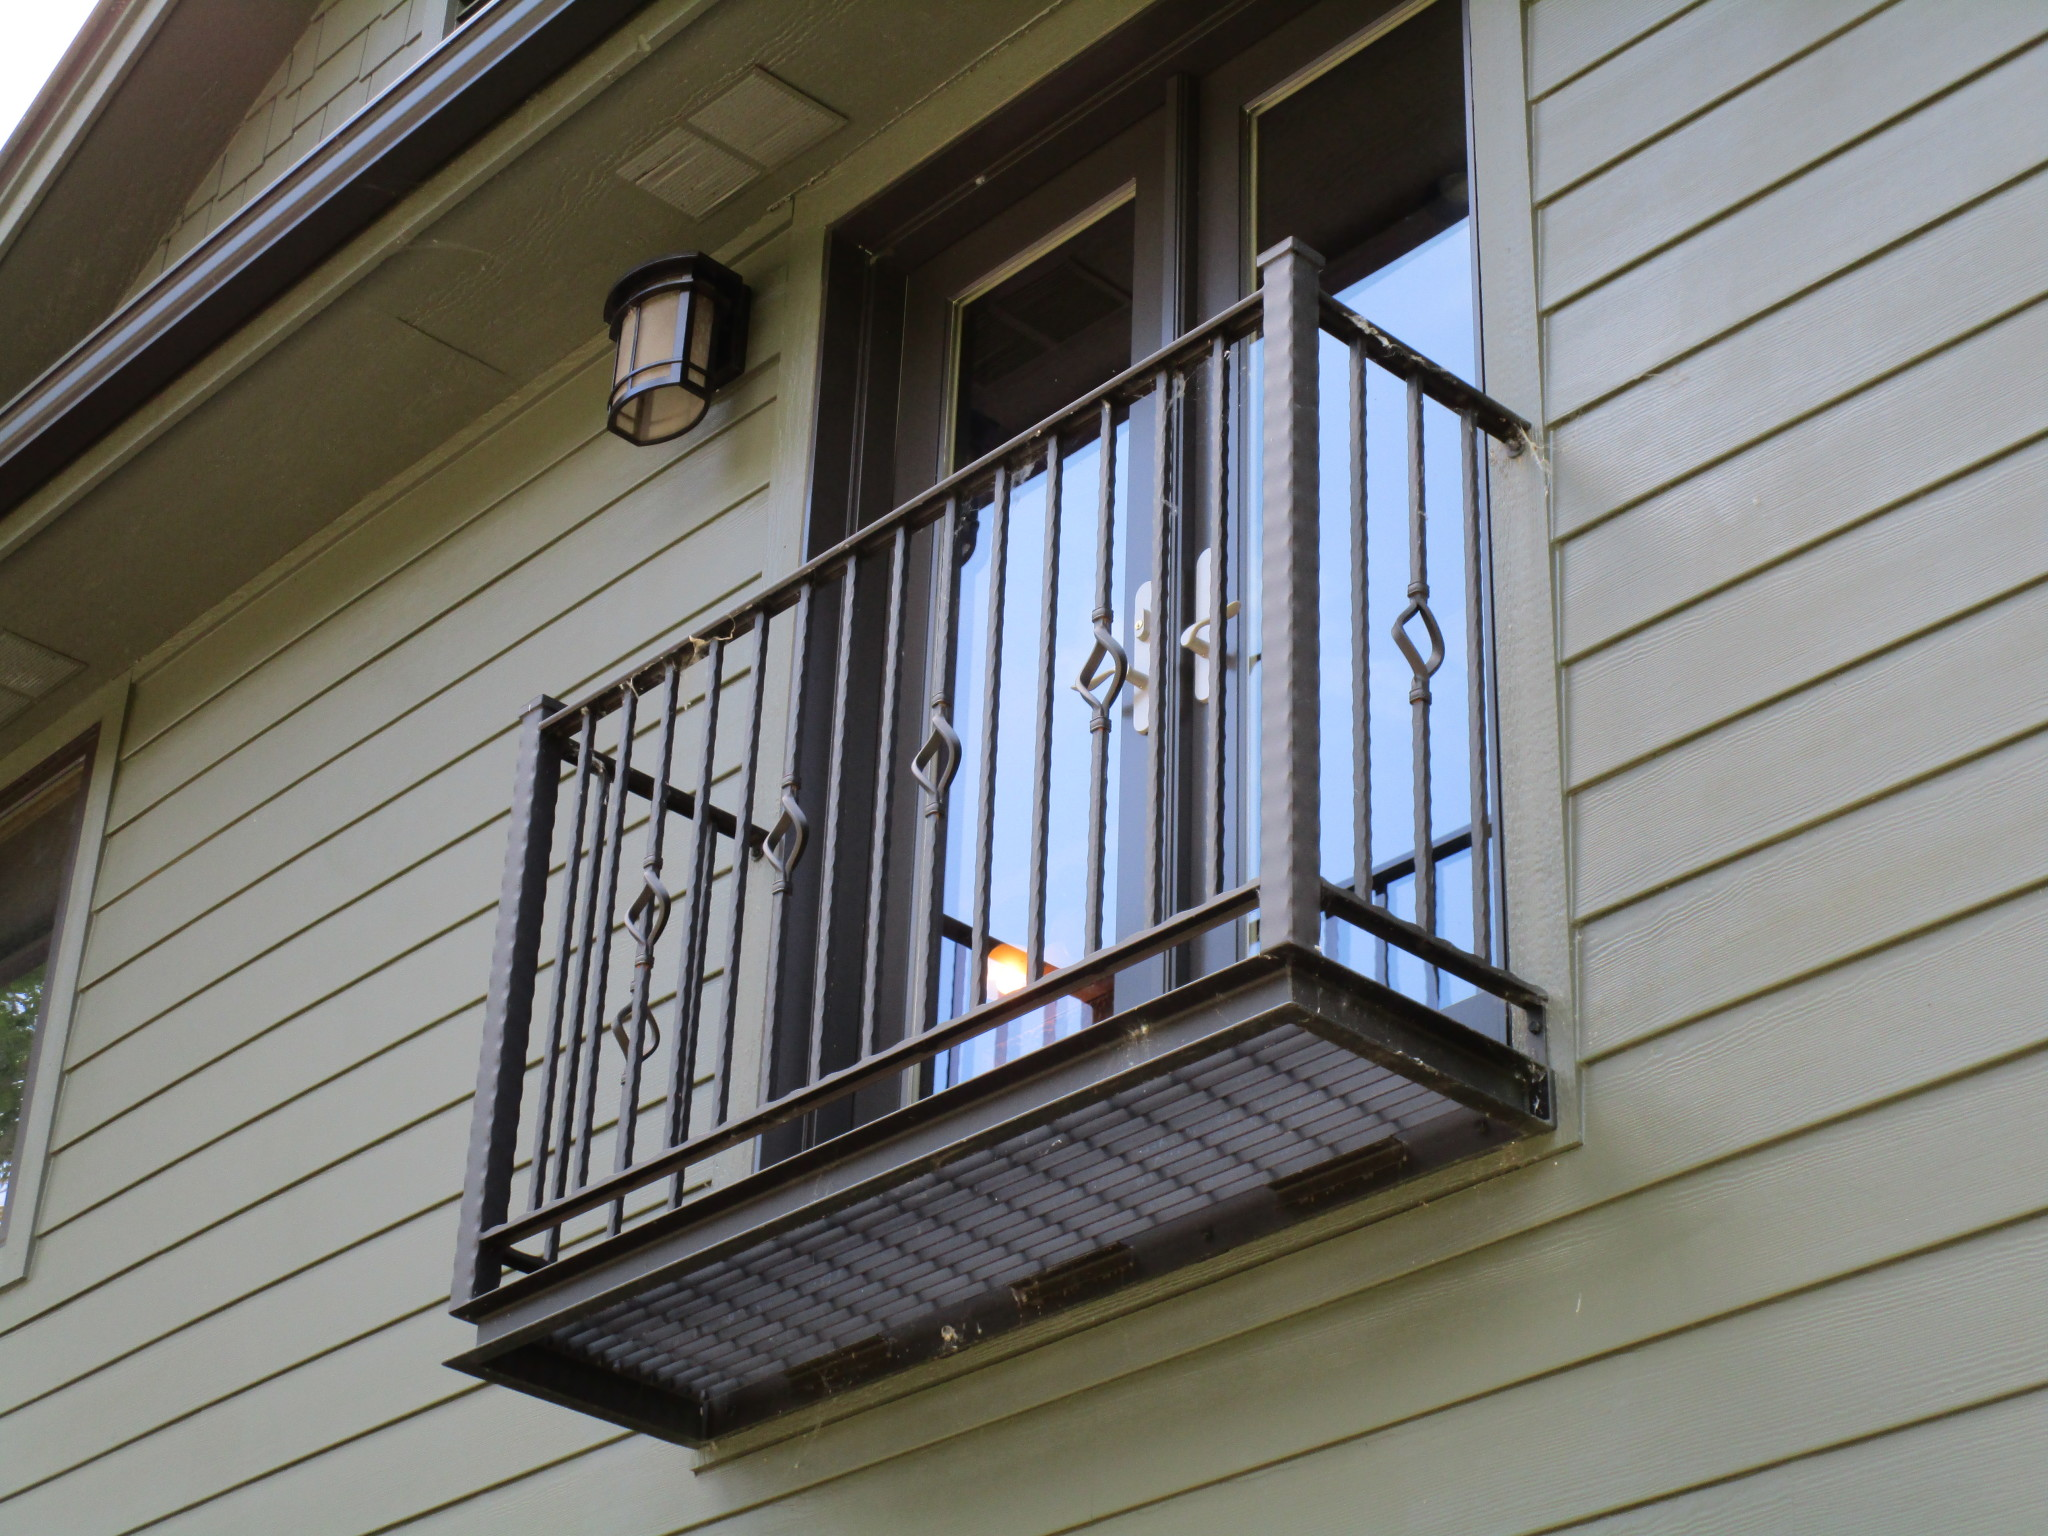 Decorative Awnings Juliette Balconies | O'brien Ornamental Iron